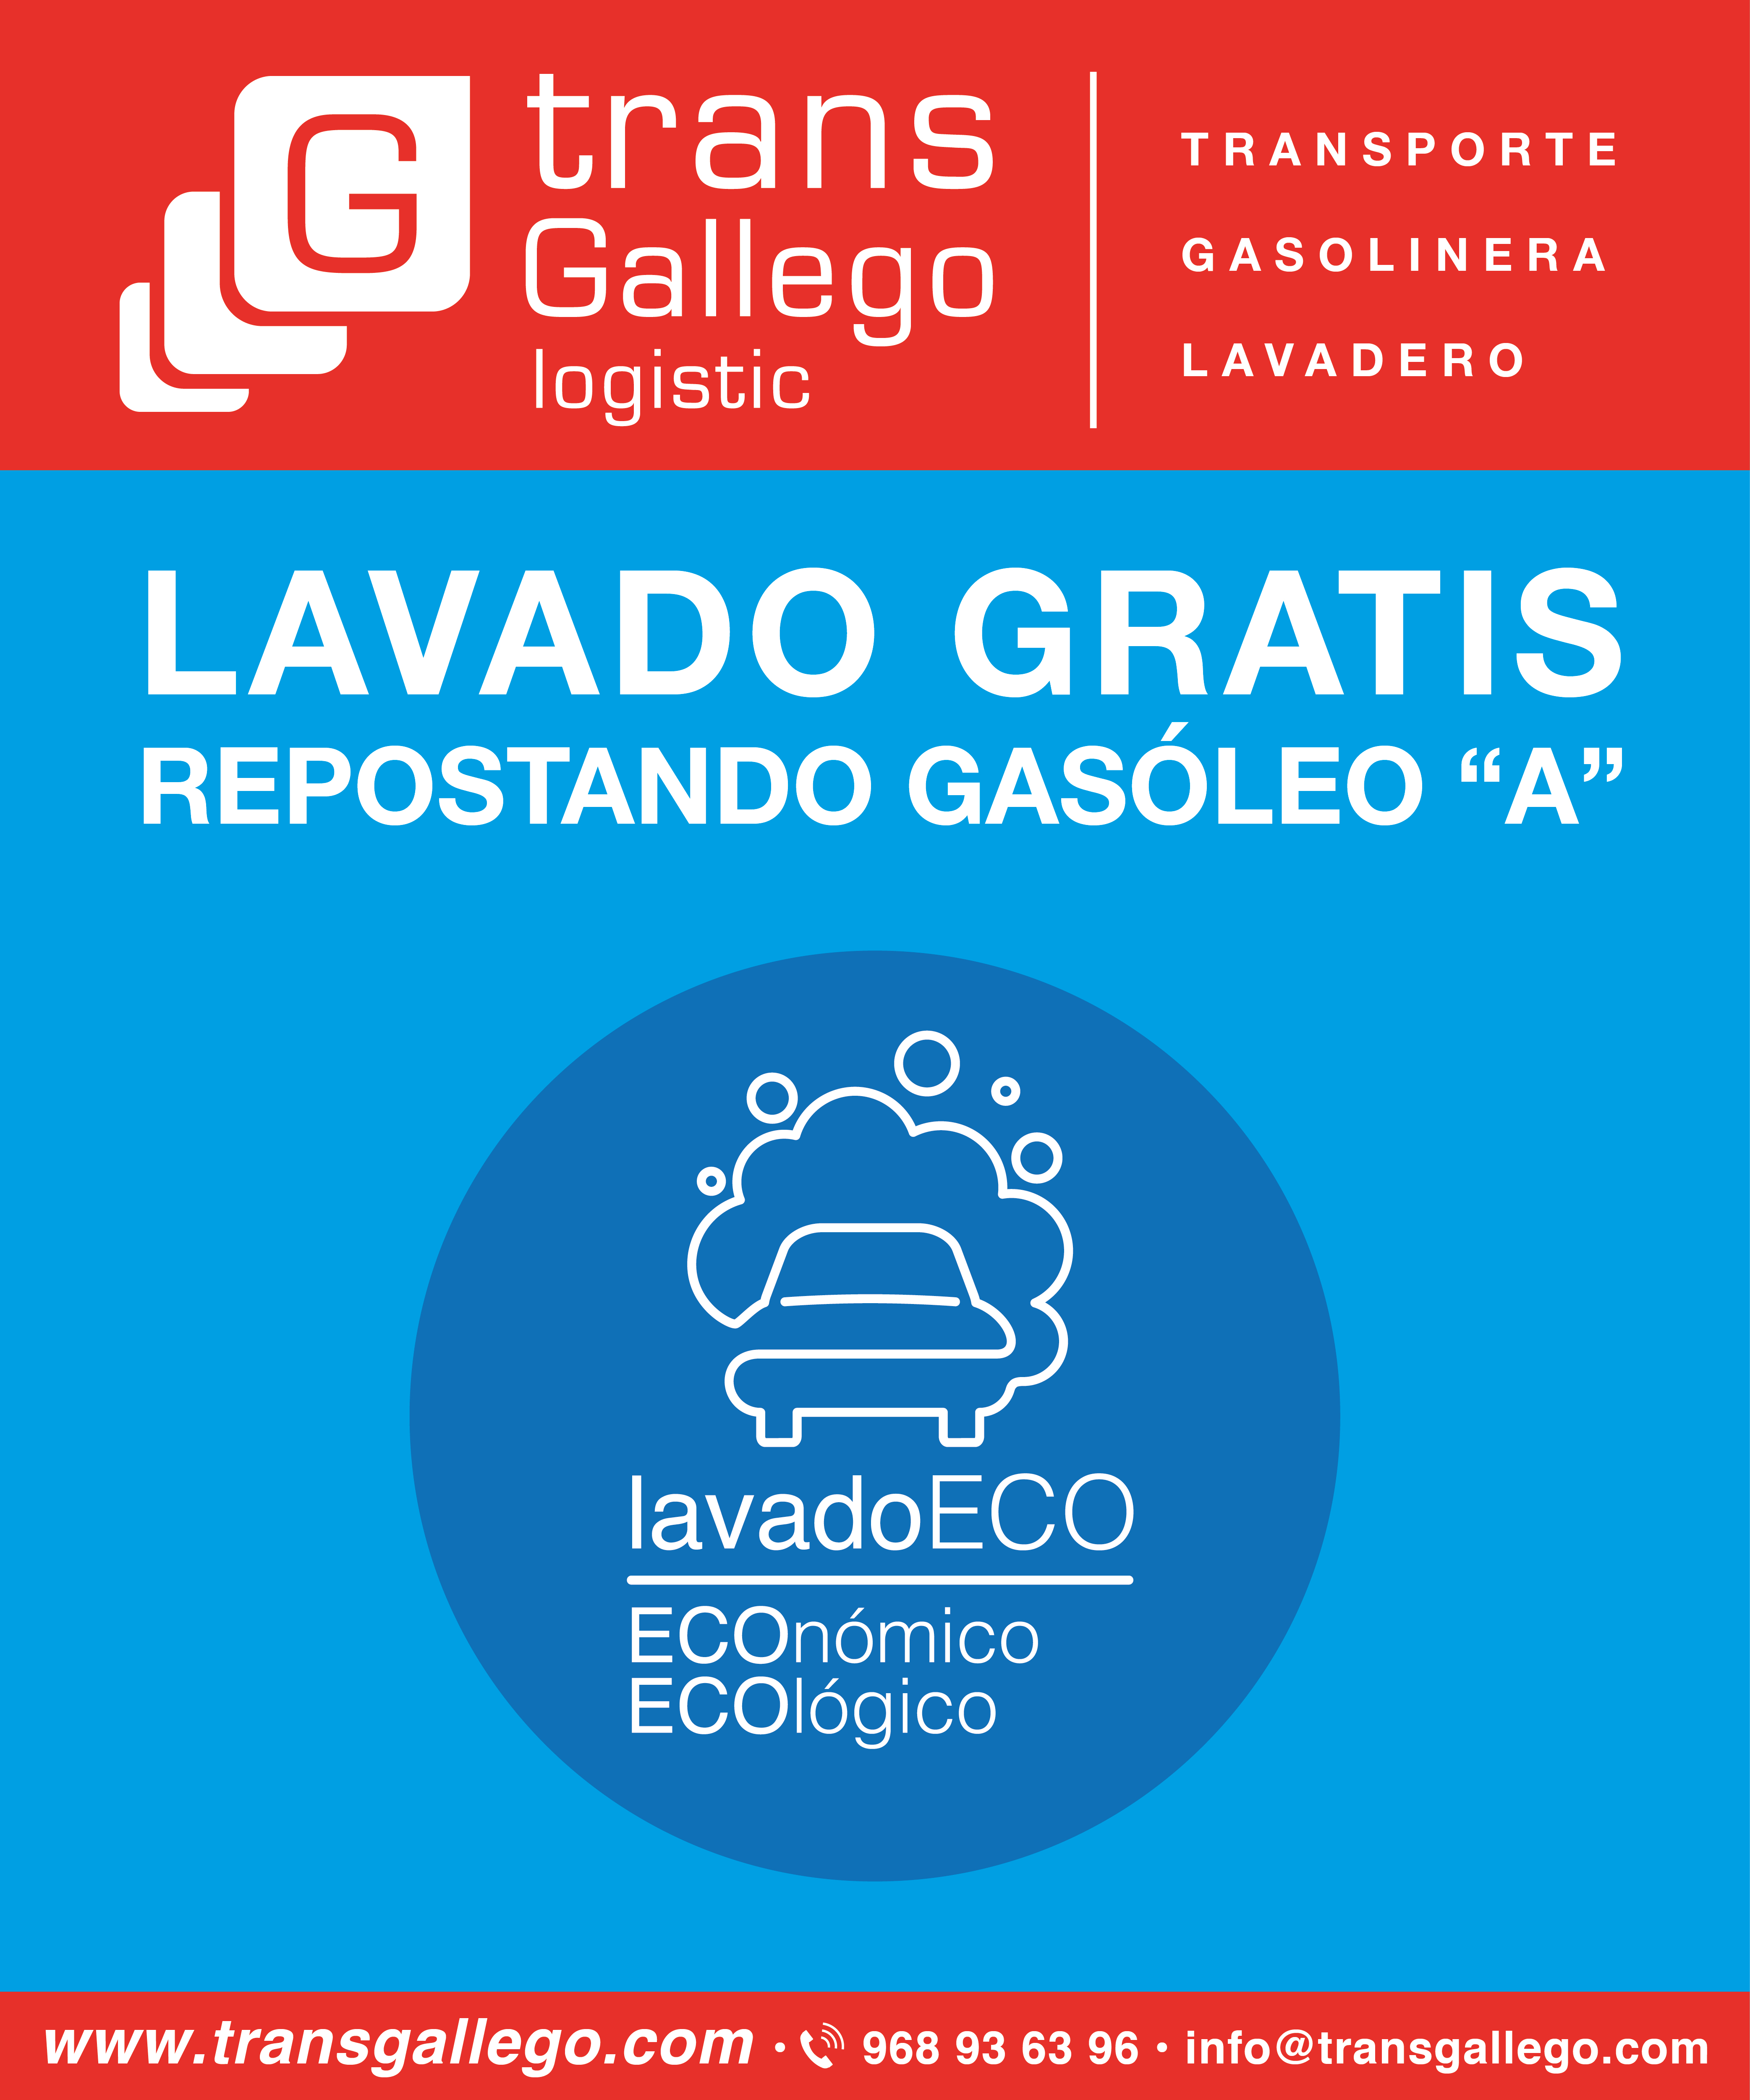 TRANSGALLEGO LOGISTIC